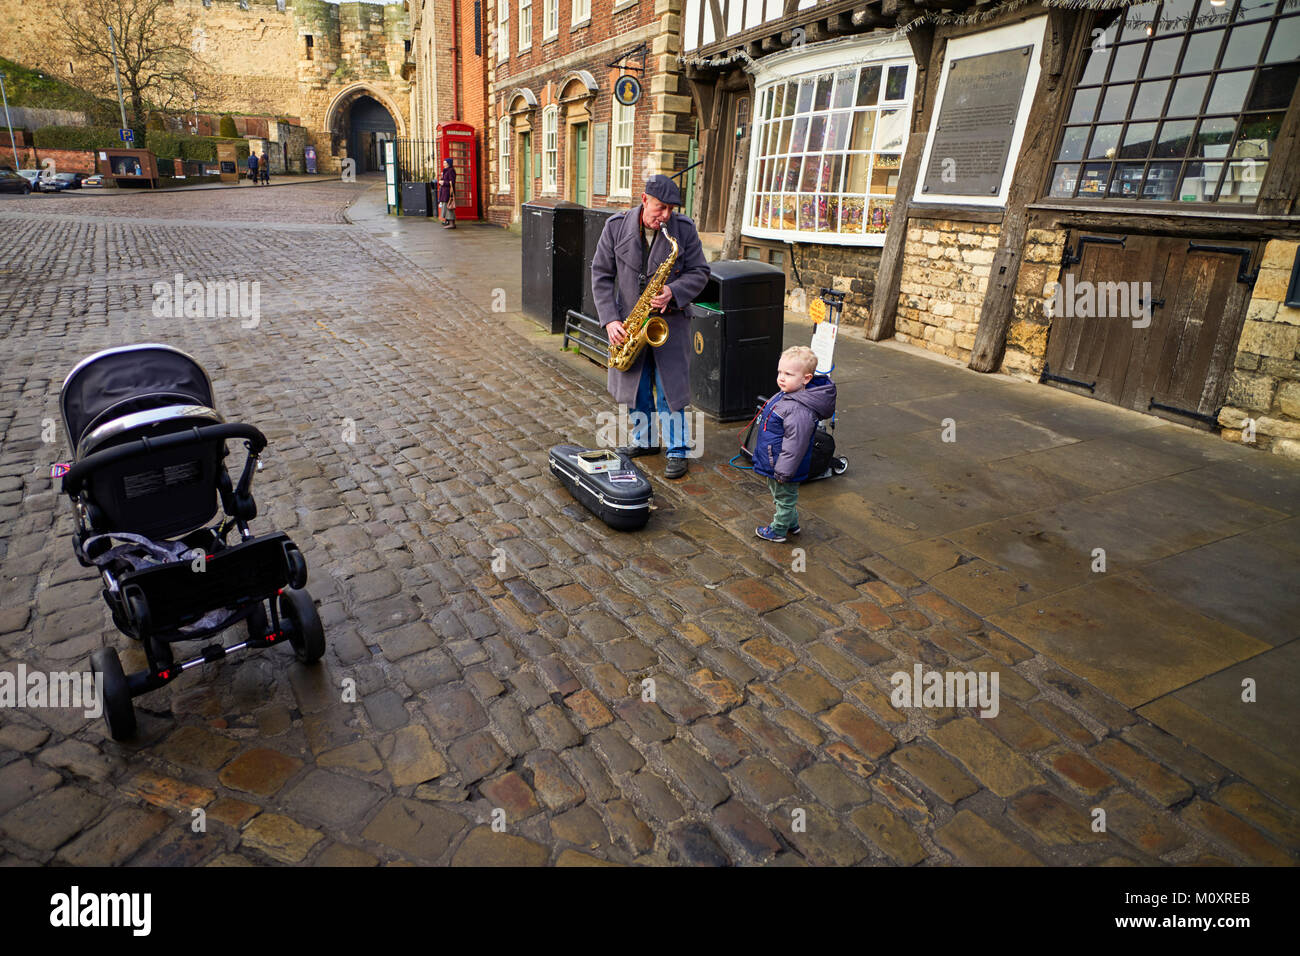 A small puzzled child meets a man playing a saxaphone in the street at Lincoln - Stock Image